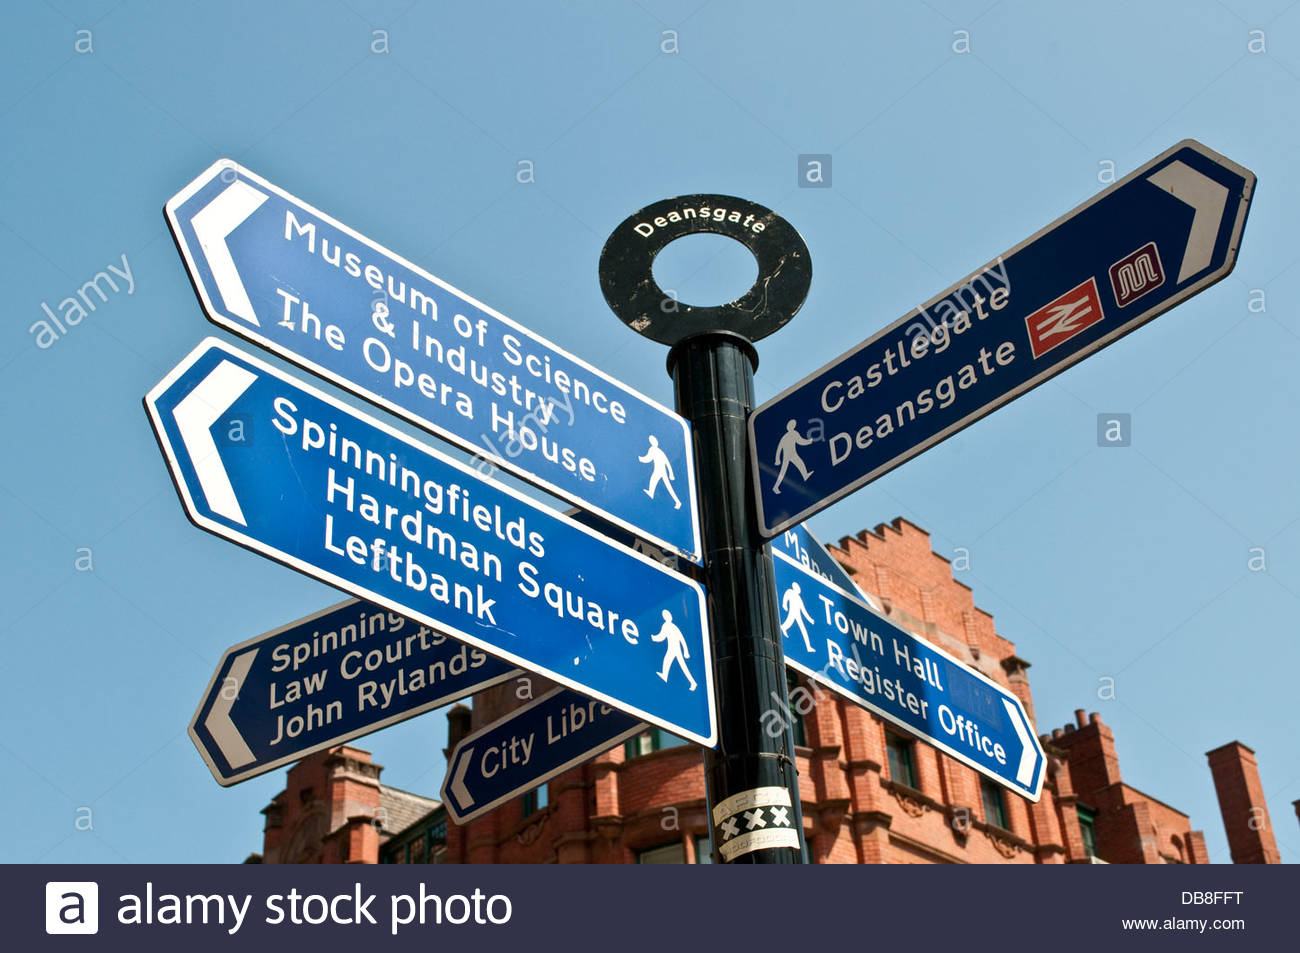 Signpost for different city sites, Manchester, UK - Stock Image